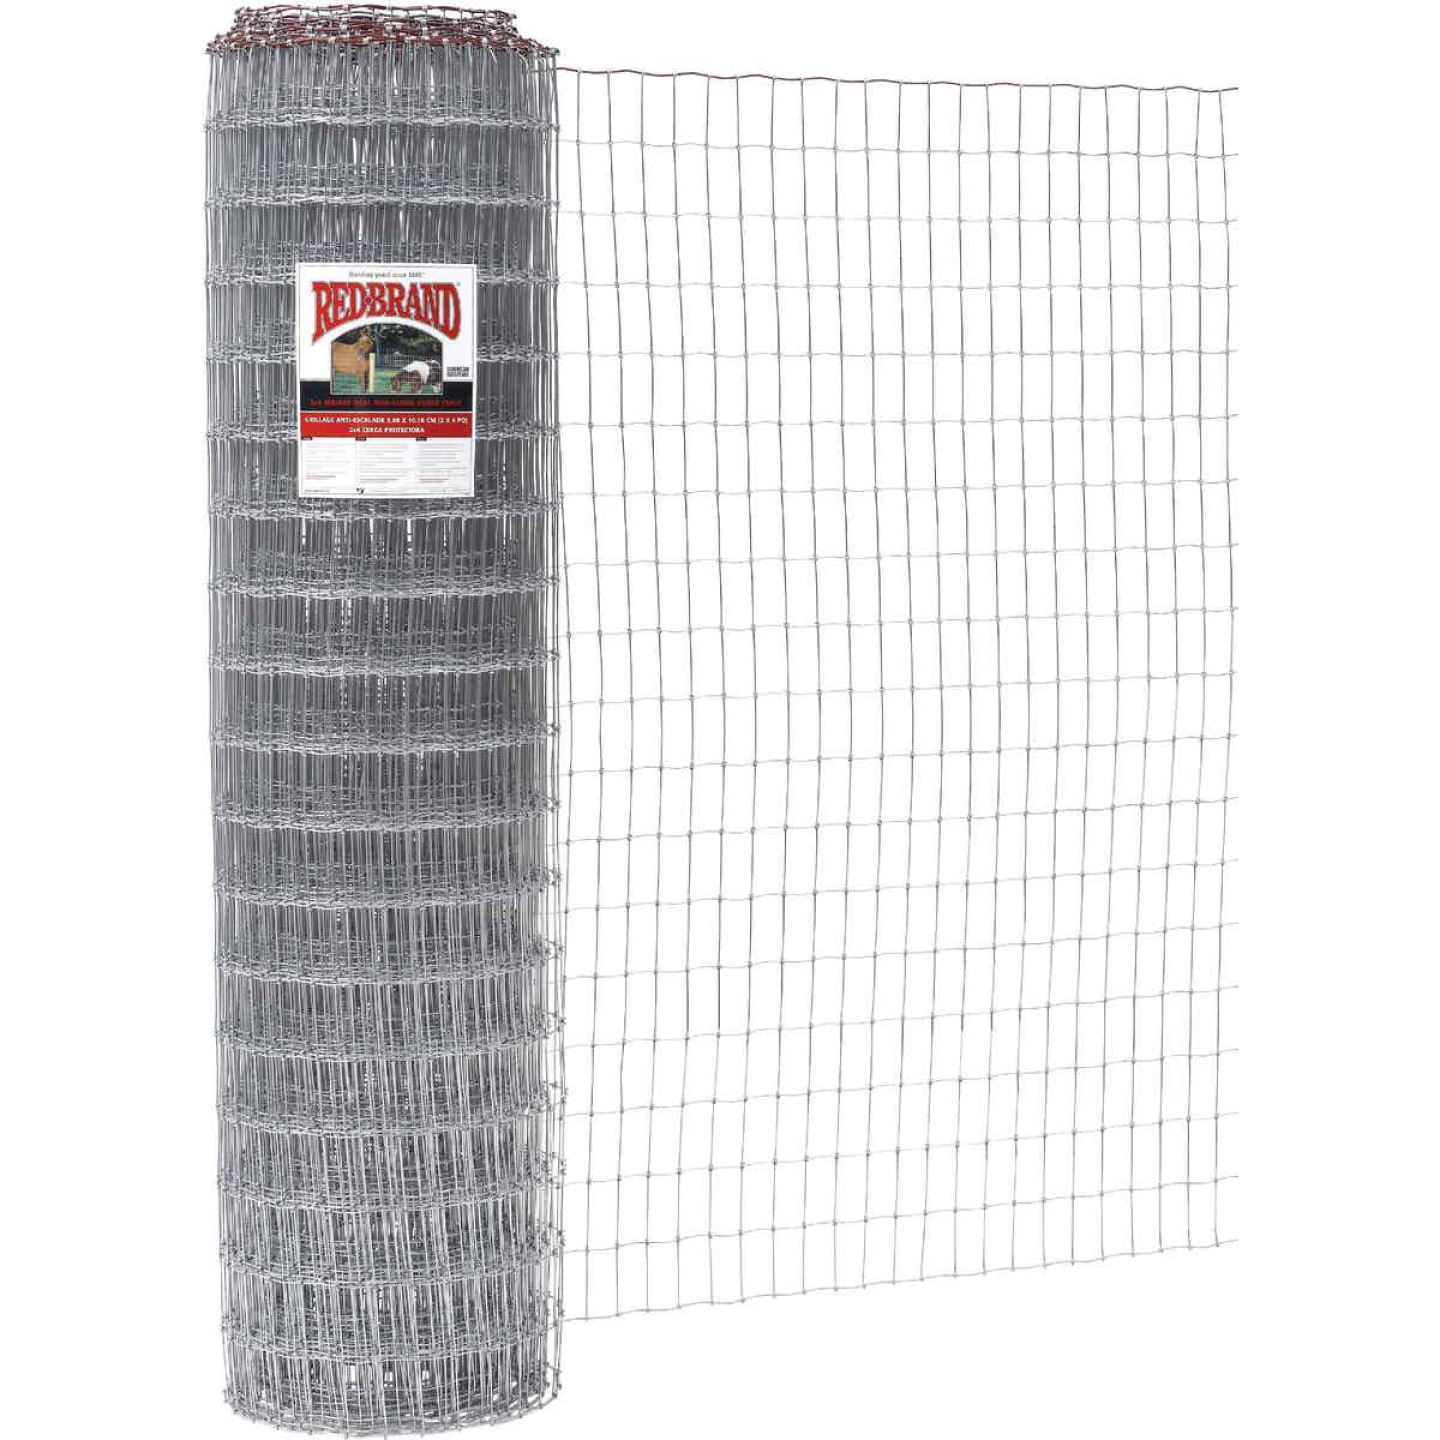 Keystone Red Brand 48 In. H. x 100 Ft. L. Galvanized Steel Class 1 Square Deal Non-Climb Horse Fence Image 1